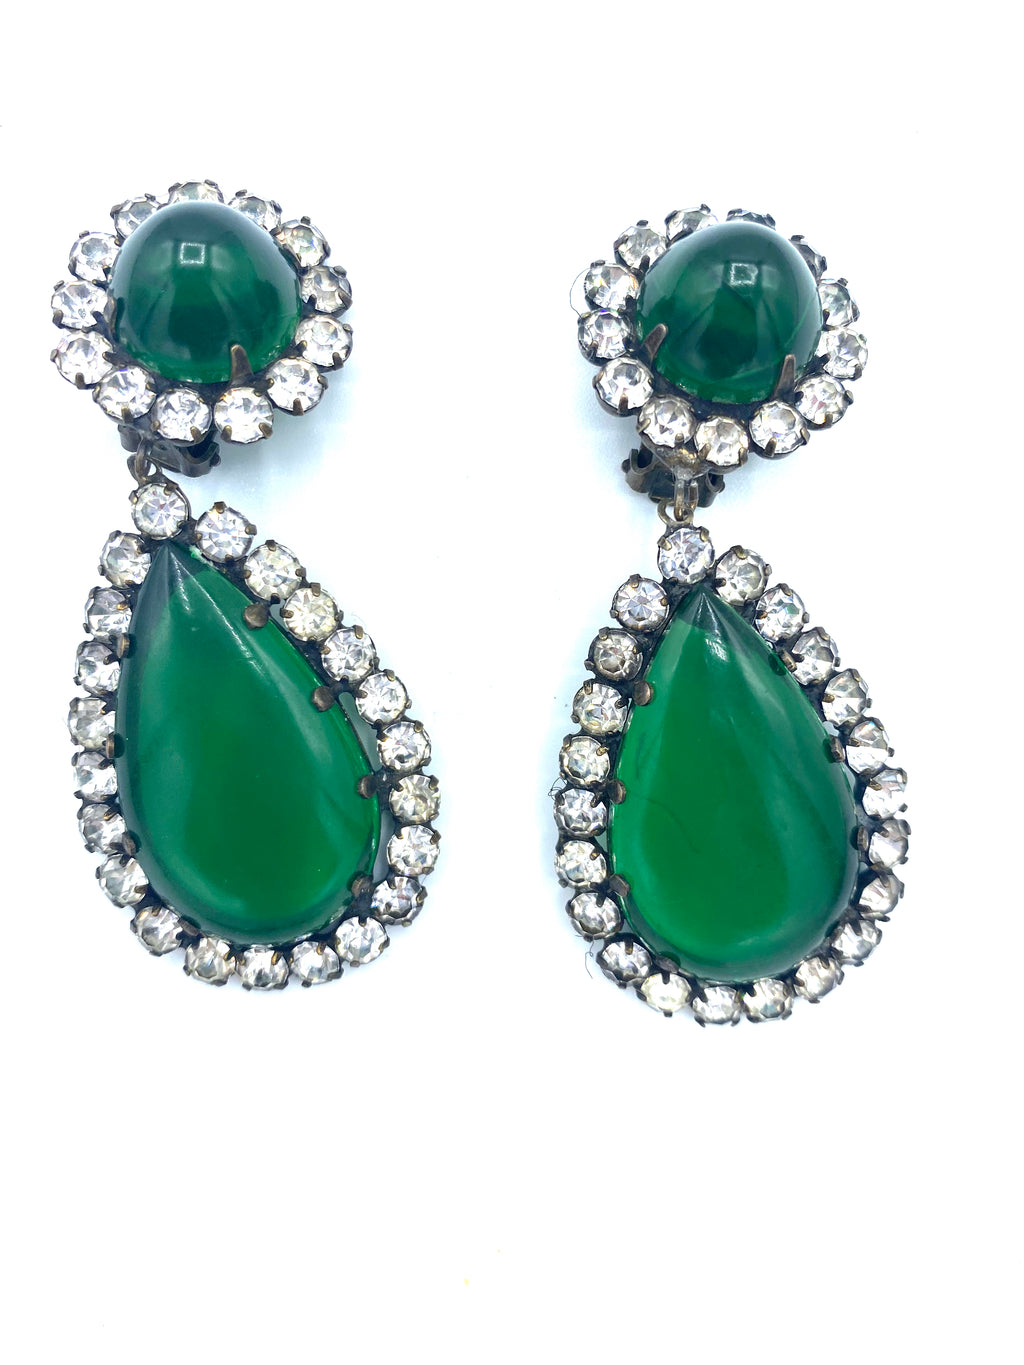 KJL 60s Emerald Green Teardrop Earrings FRONT 1 of 2